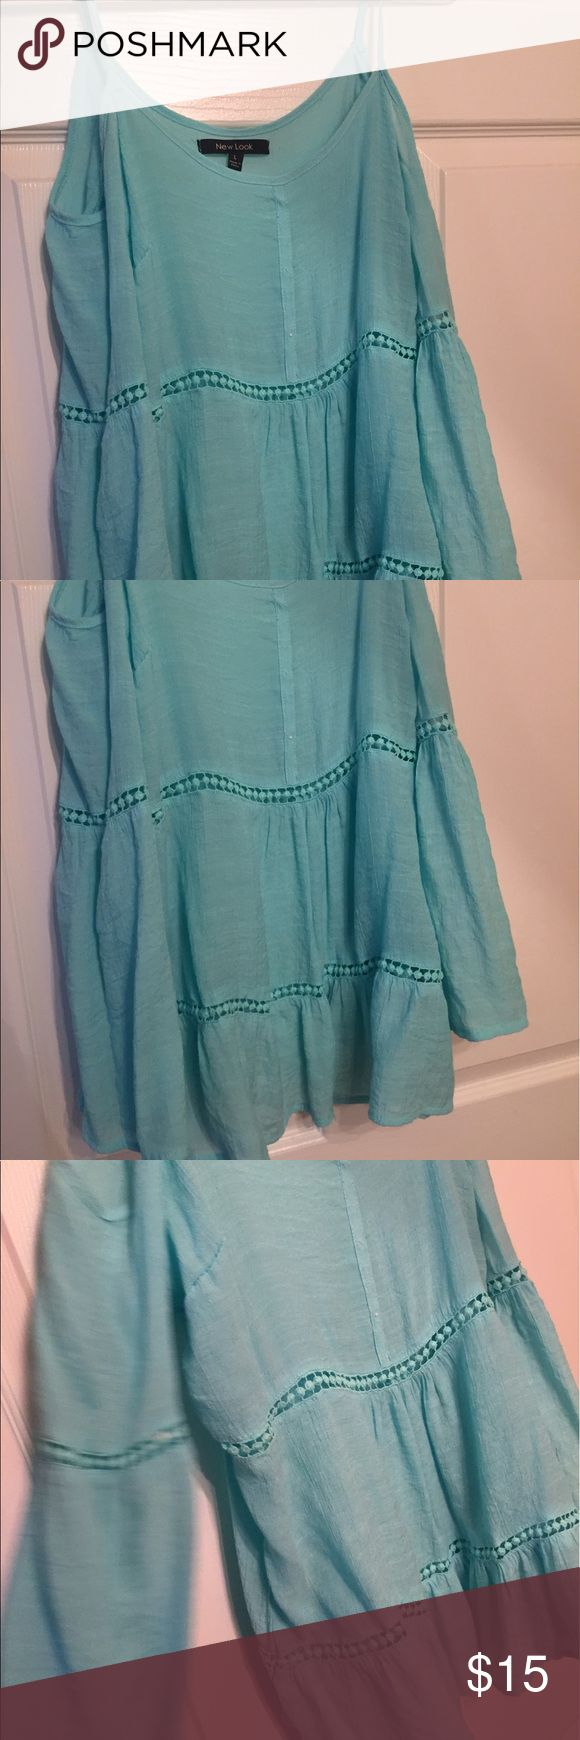 Adorable mint blouse Brand new. Adorable for any occasion. Prefect on shorts and cowboy boots or shorts on sandals/ wedges. New Look Tops Blouses